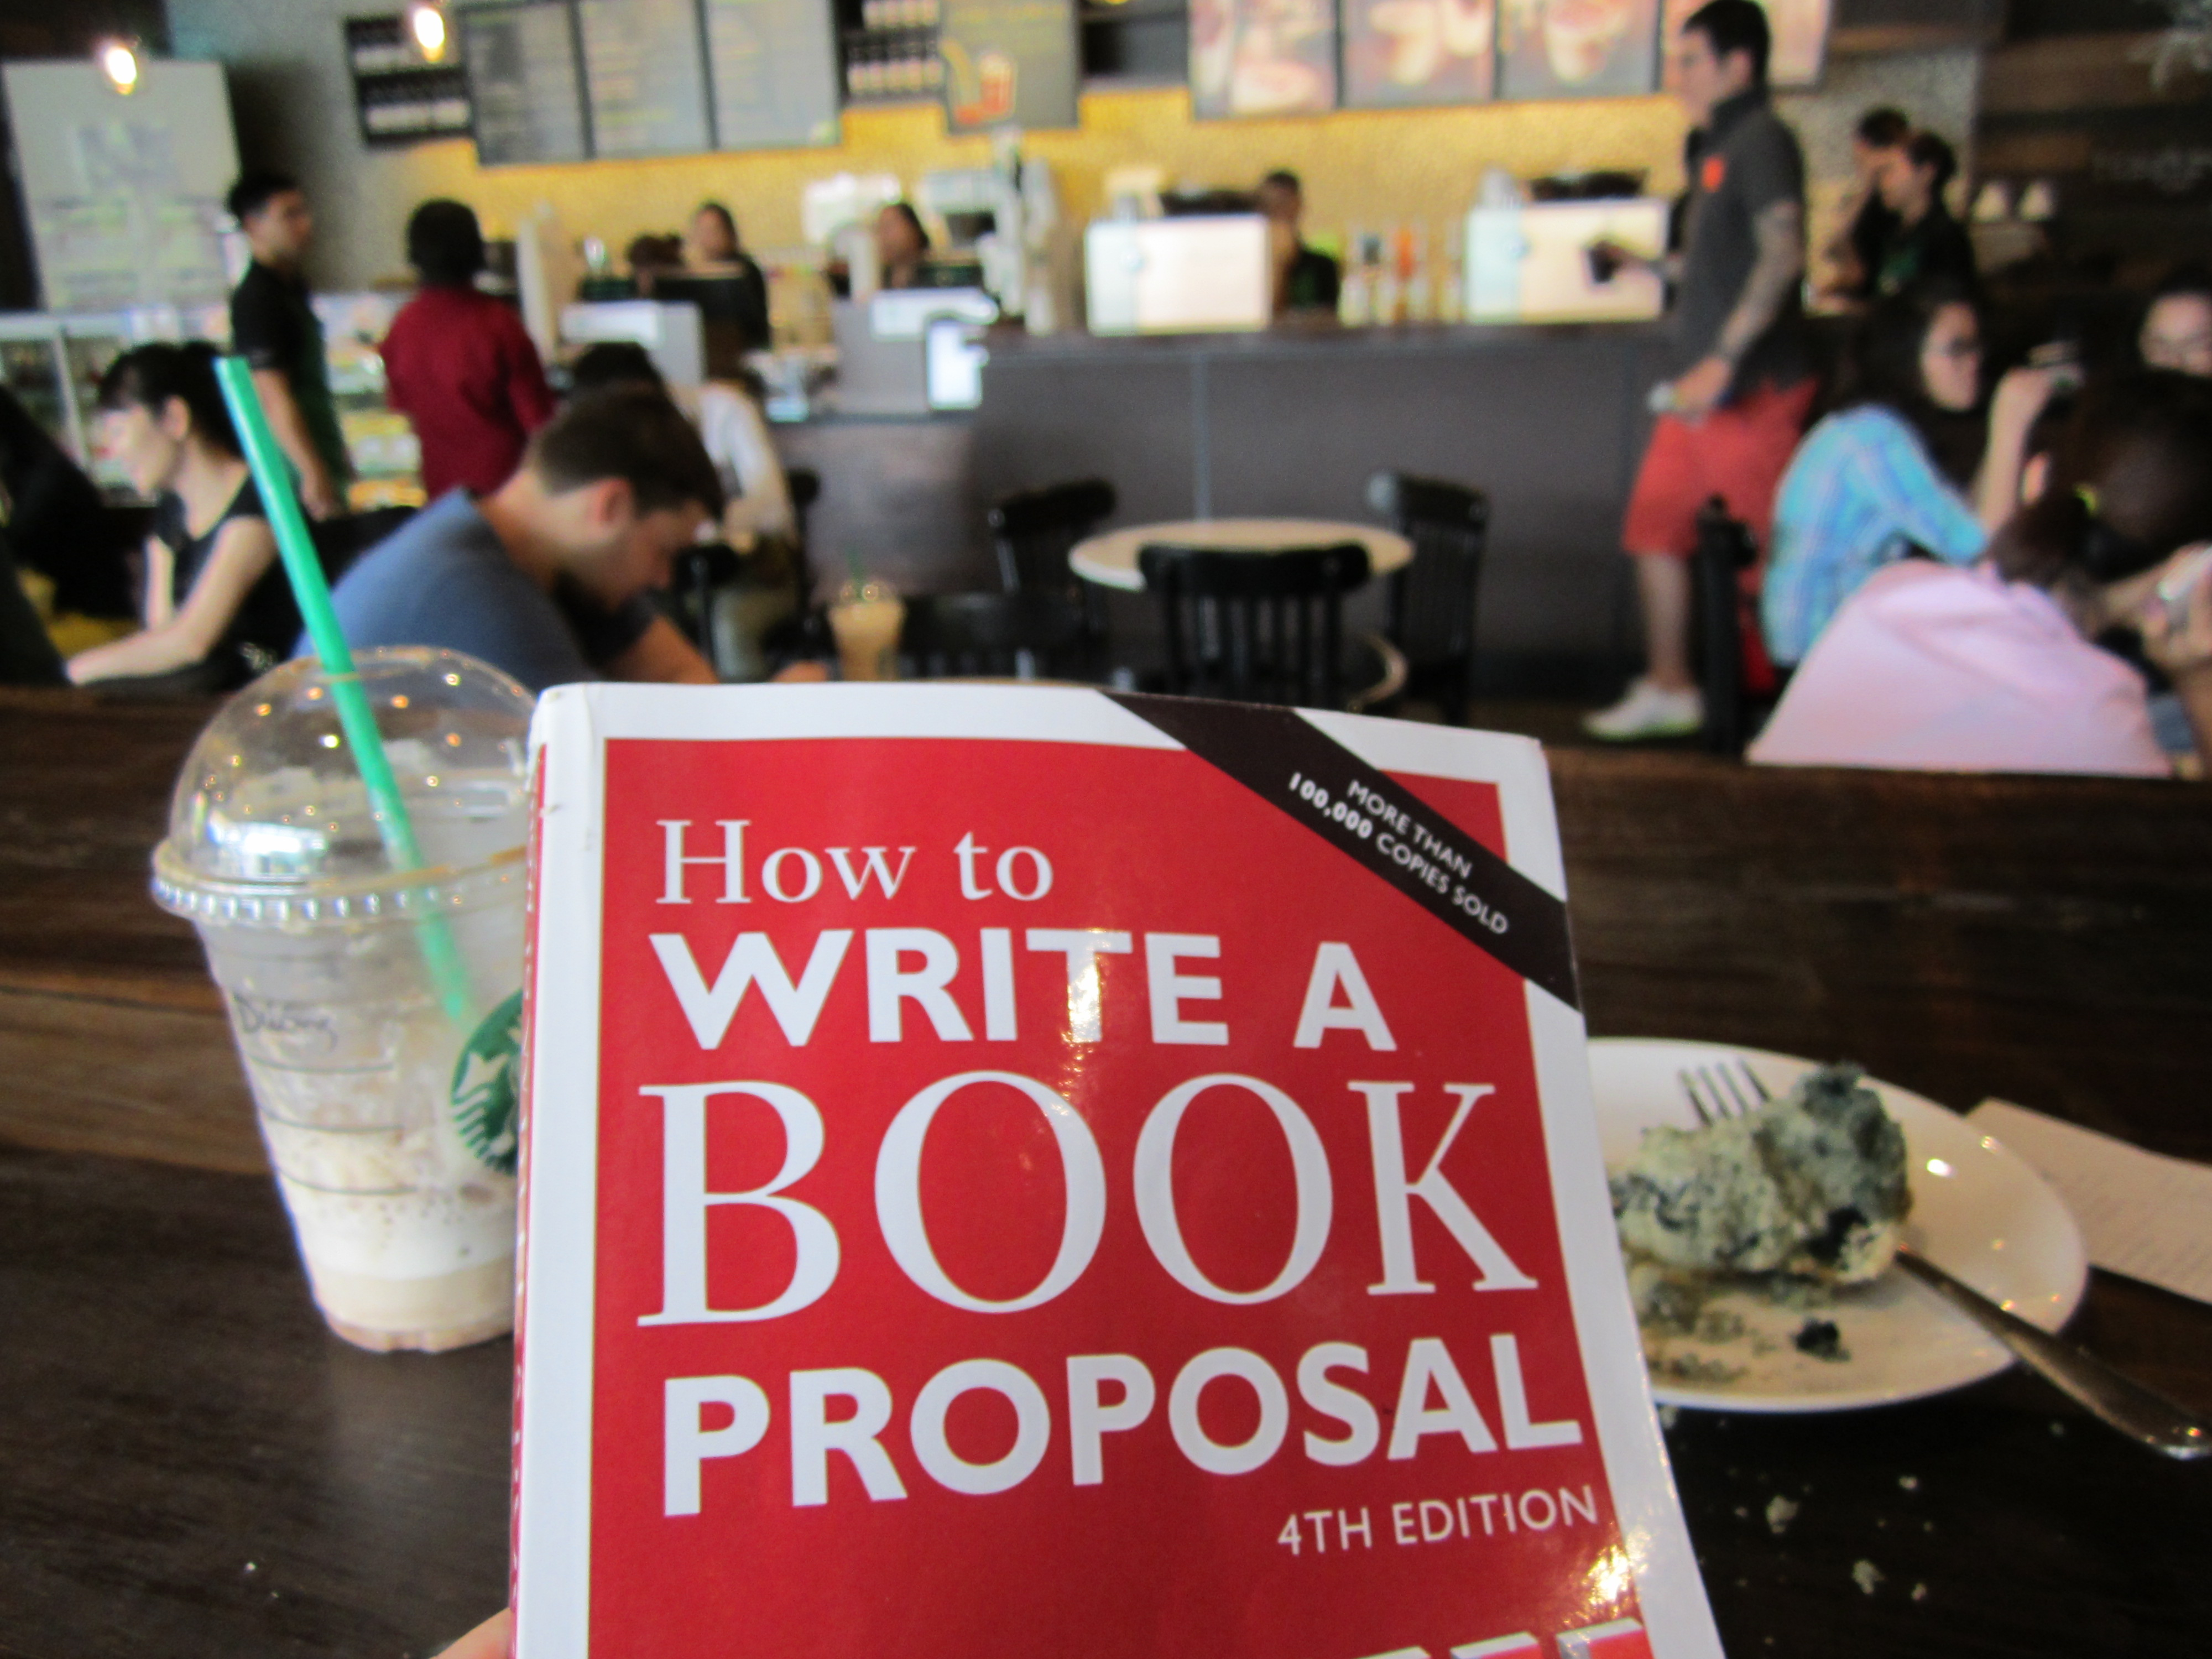 how to write a book proposal Write a book proposal: lisa tener, renowned book proposal coach provides a  book proposal program to help  you want to write fiction or a children's book.